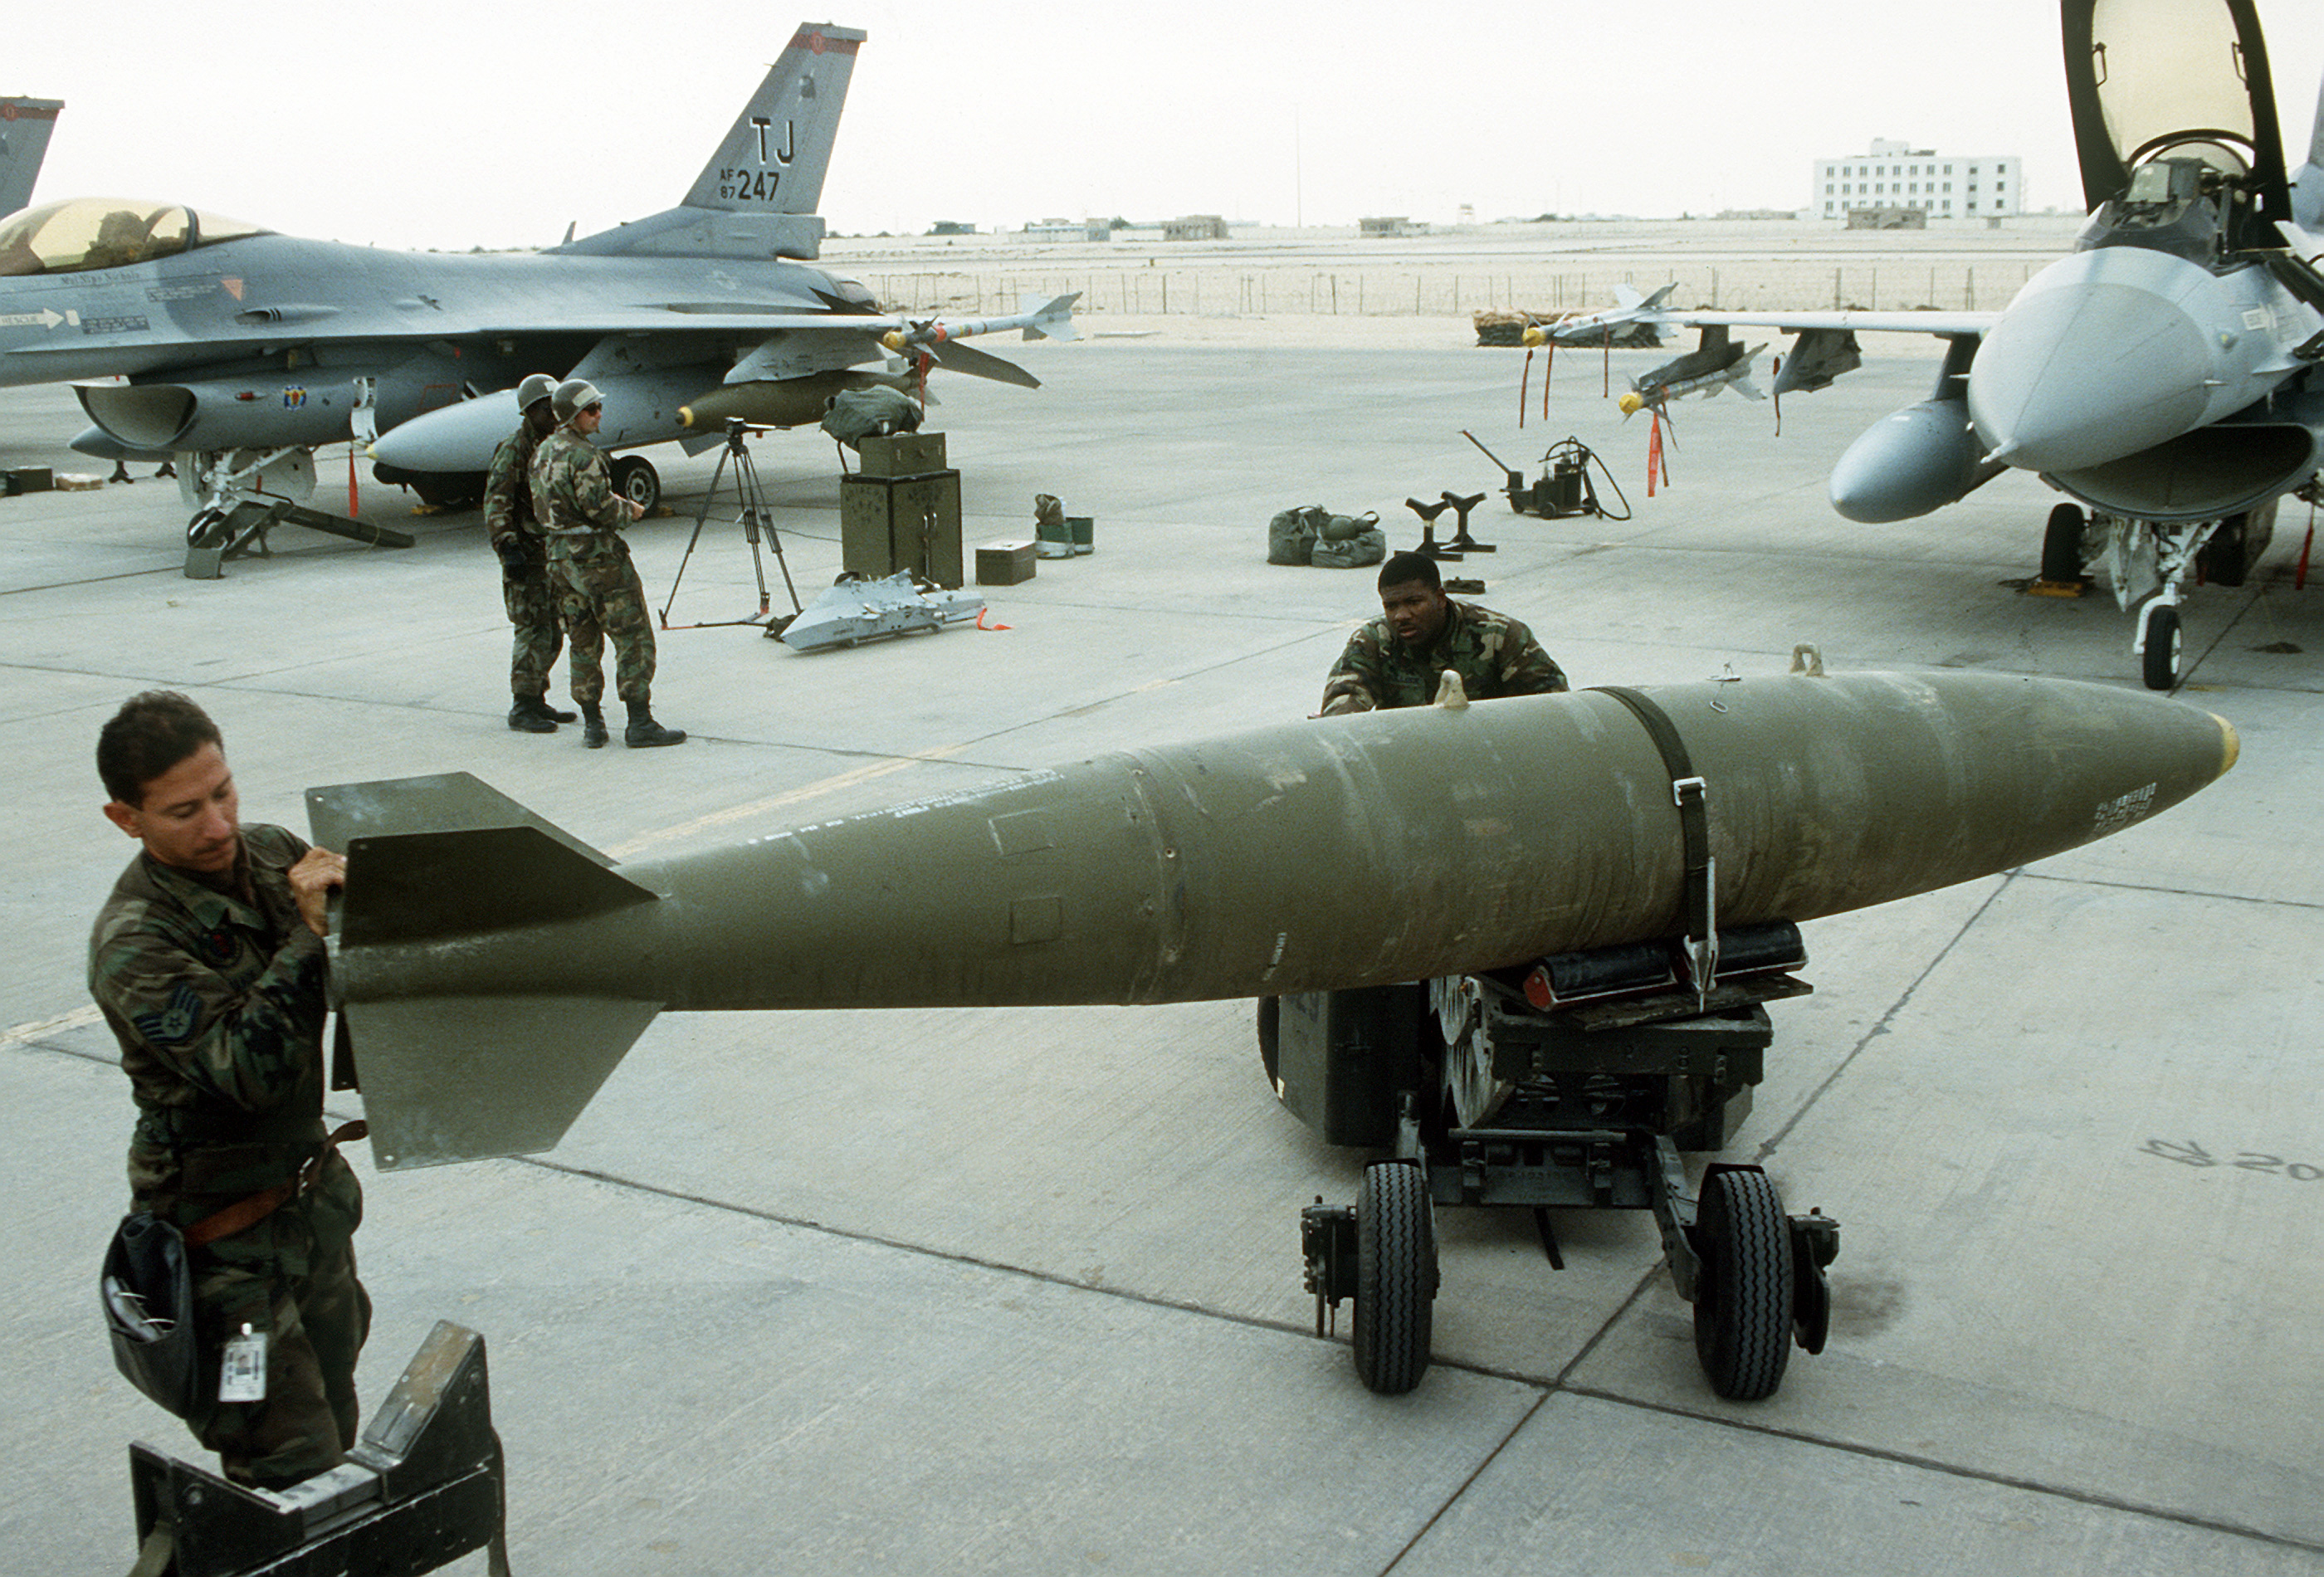 "USAF photo by Staff Sgt. Lee F. Corkran, via (a href=""http://commons.wikimedia.org/wiki/File:Mark-84_bomb.jpg"">Wikimedia."